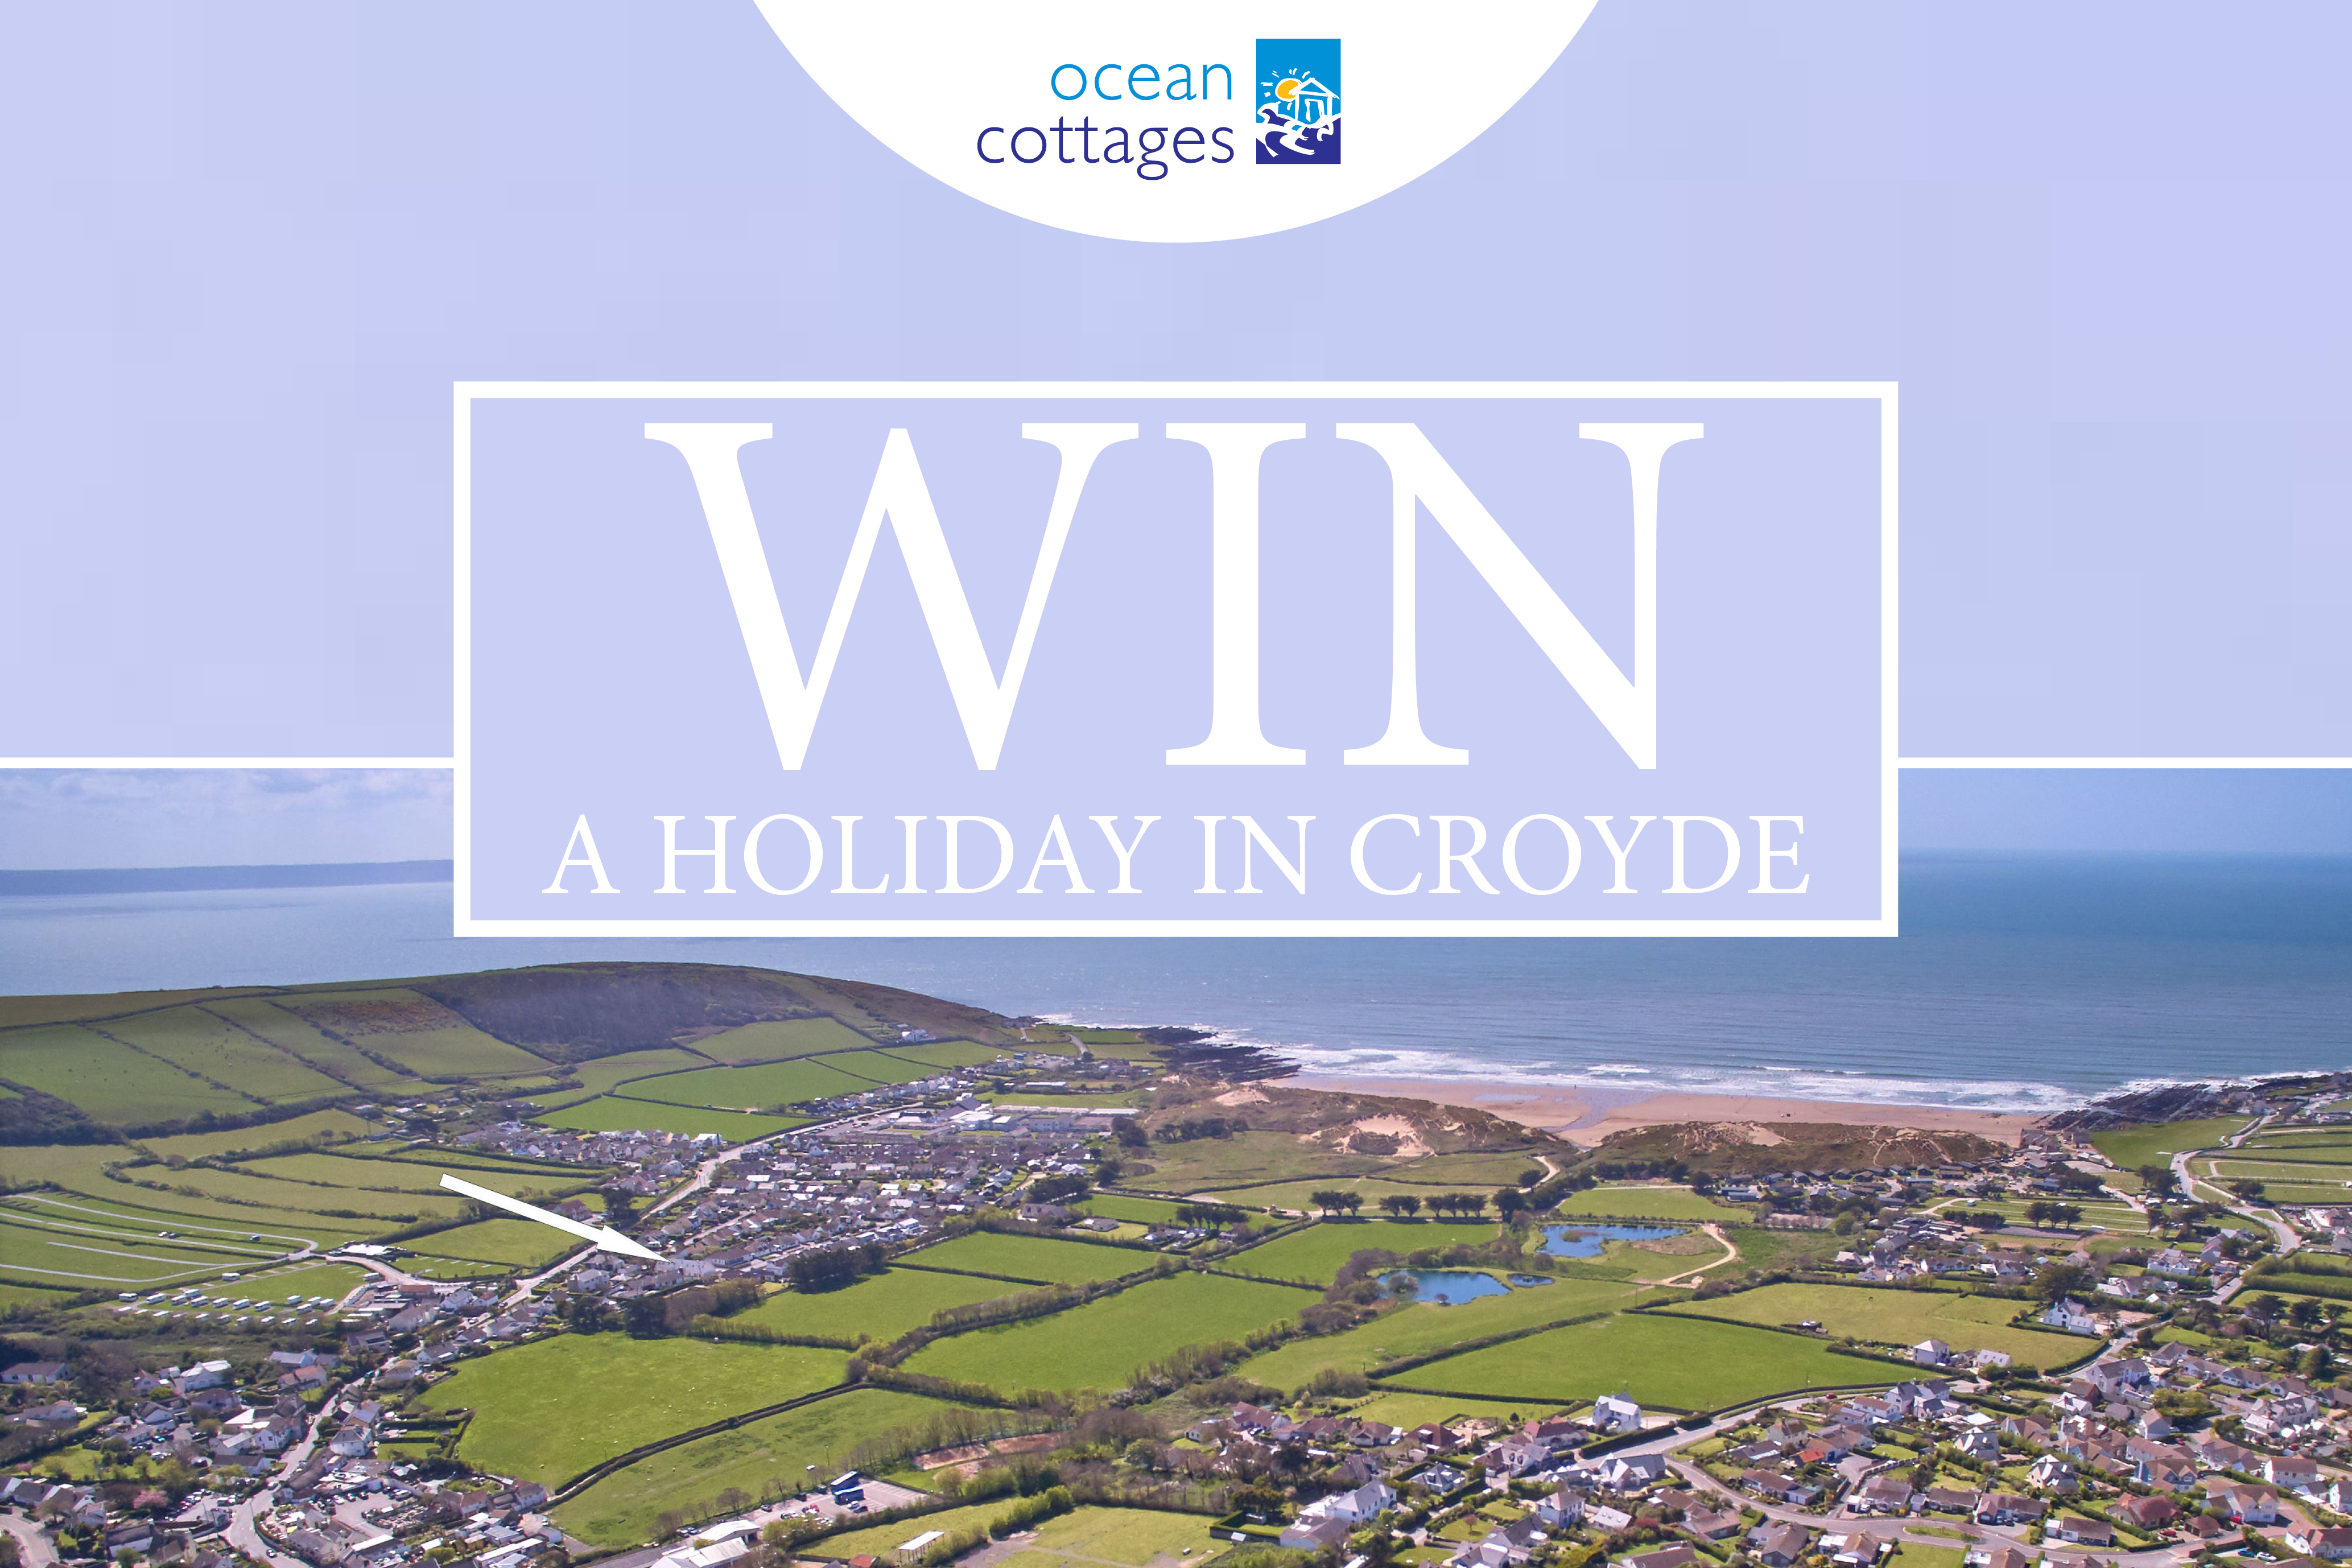 WIN A HOLIDAY IN CROYDE